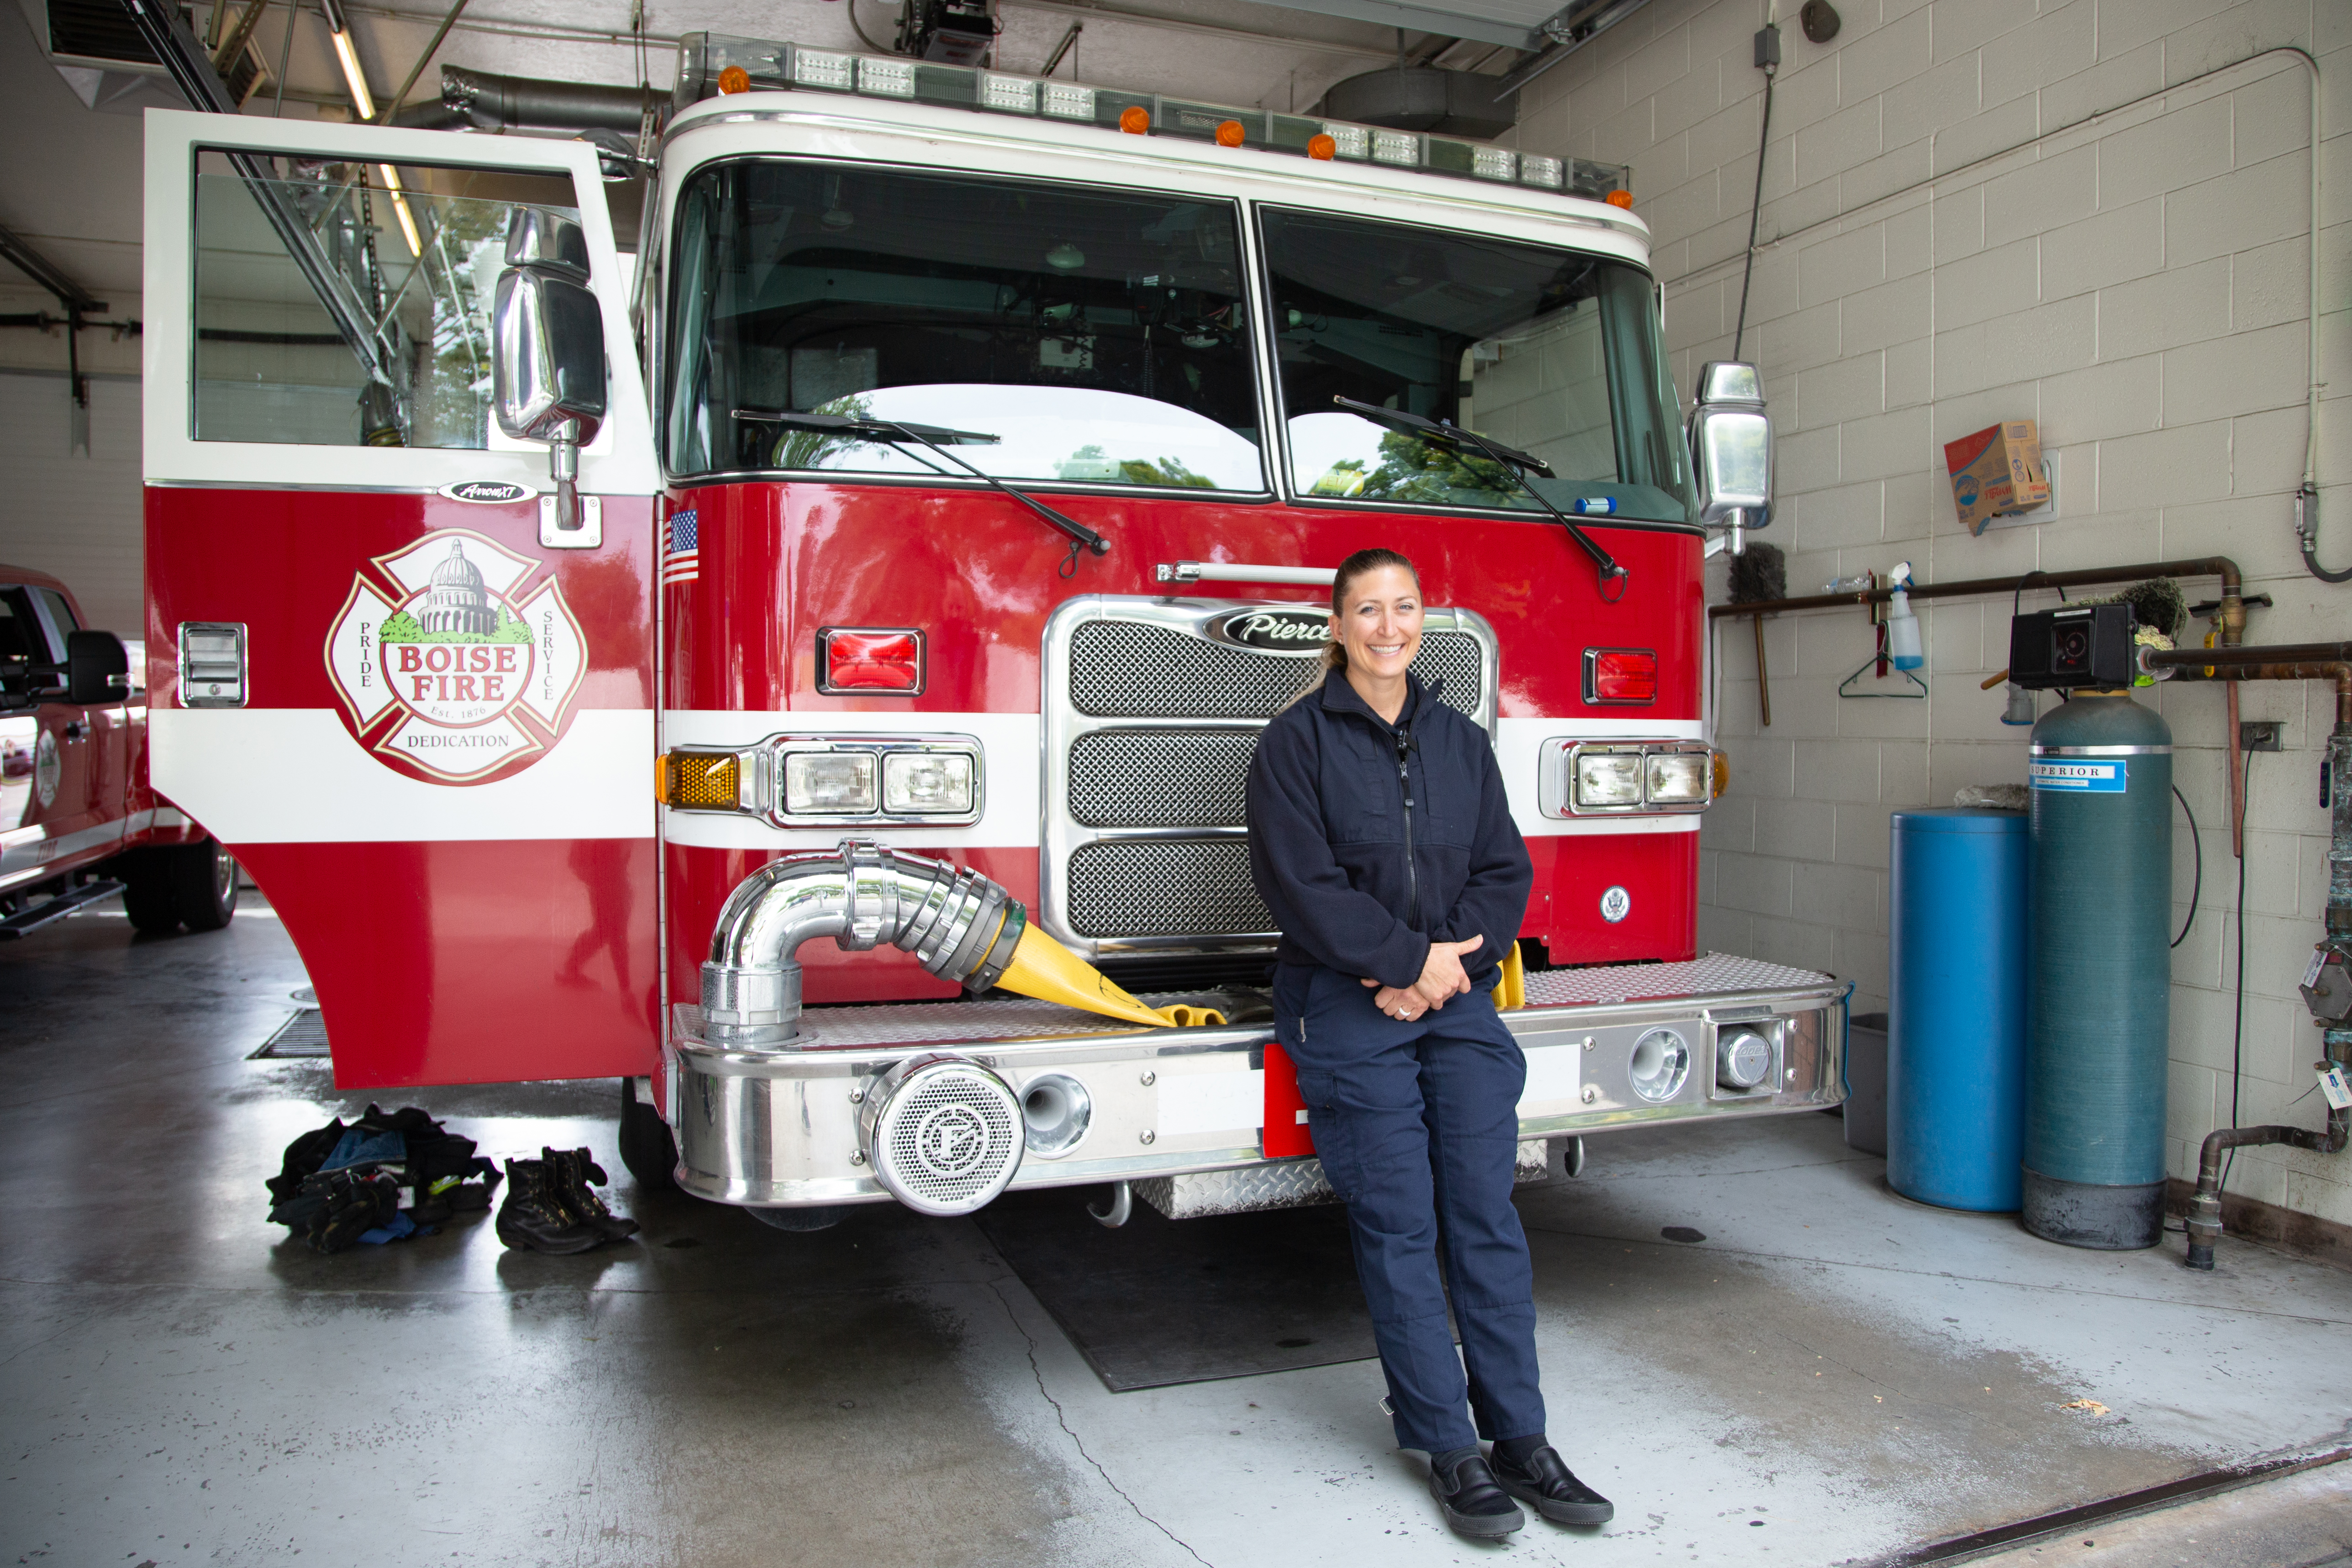 Captain Ashley Rosenbaum at Fire Station 11, Boise, ID. Rosenbaum is the first female captain of the Boise Fire Department and a graduate of the Boise State Public Health program. Photo by Arlie Sommer, Boise State Extended Studies.